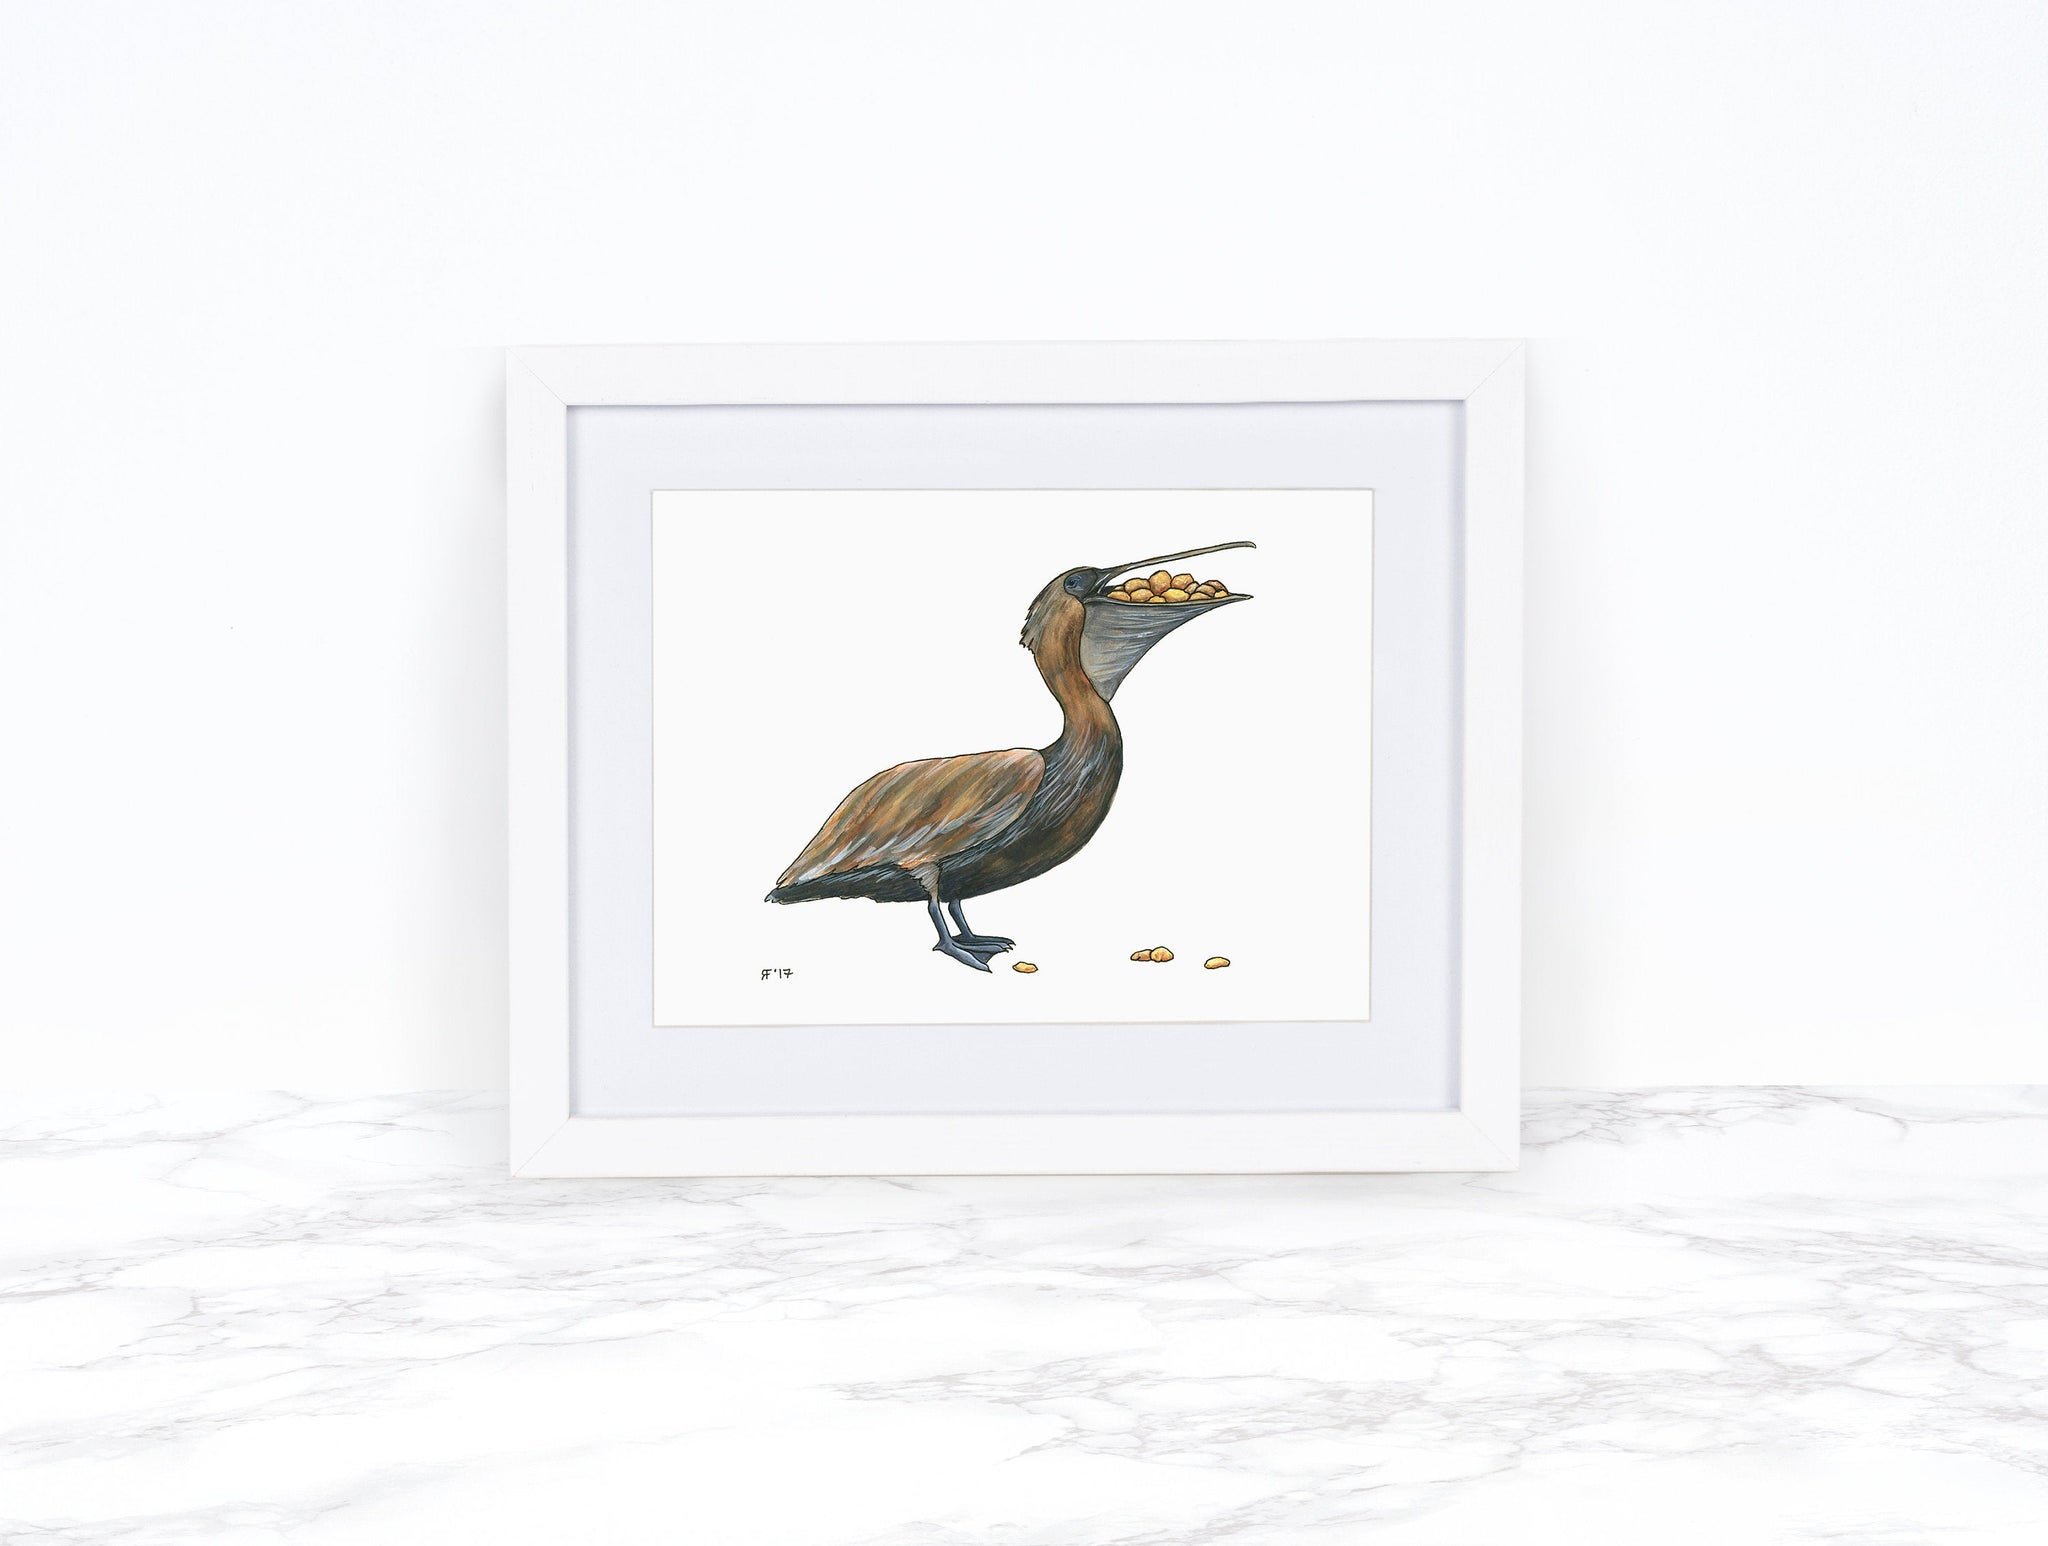 Pelican Art Print Kitchen Wall Decor, Coastal Wall Art, Whimsical Animal Art Print, Funny Animal Art Whimsical Art Print, Kitchen Wall Art